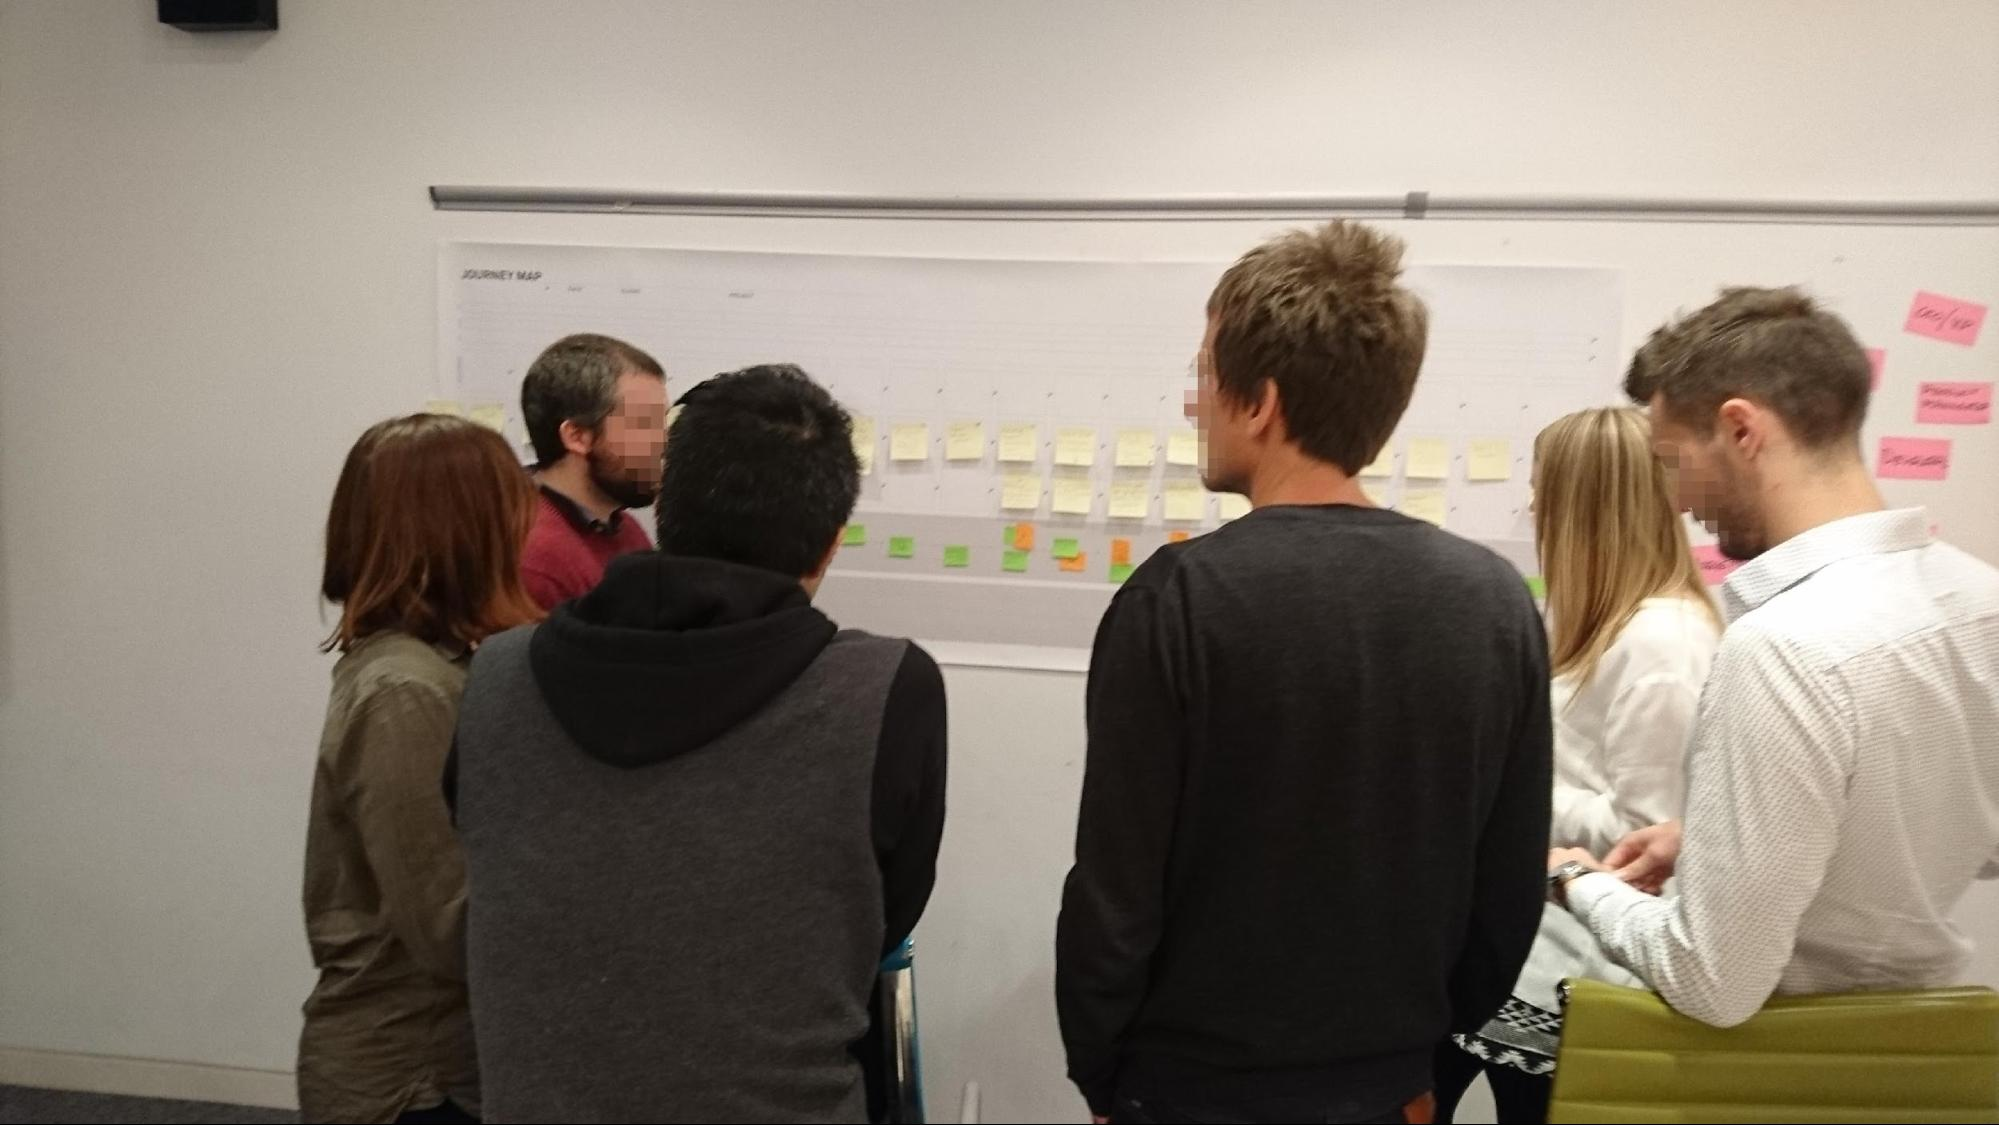 A group of people standing around a pen-and-paper journey template, discussing and creating the storyboard.